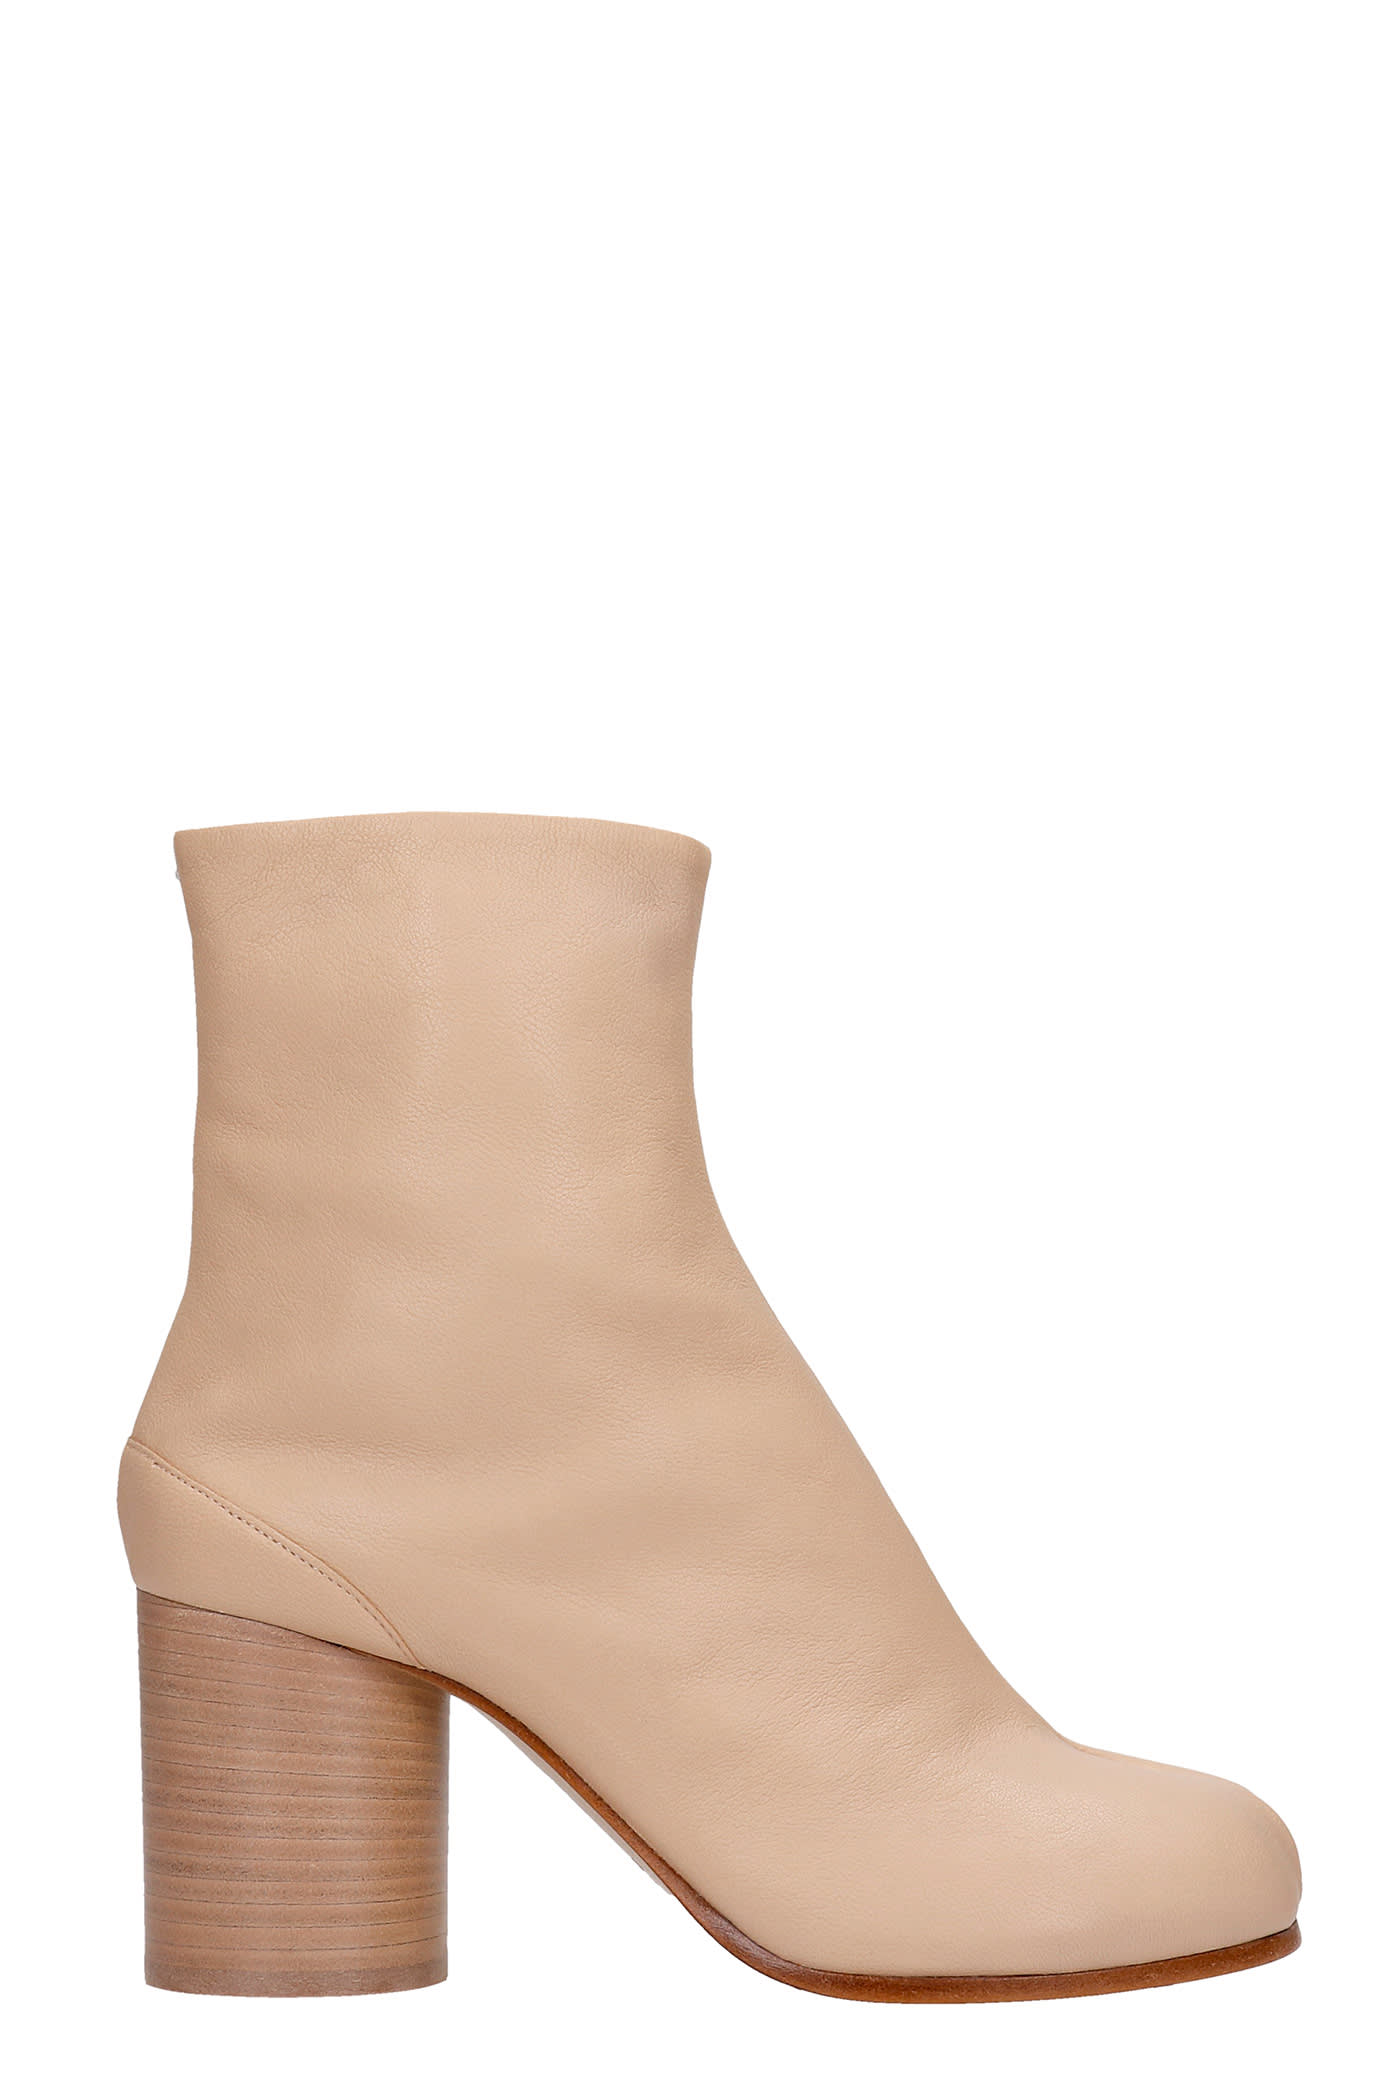 Buy Maison Margiela High Heels Ankle Boots In Powder Leather online, shop Maison Margiela shoes with free shipping